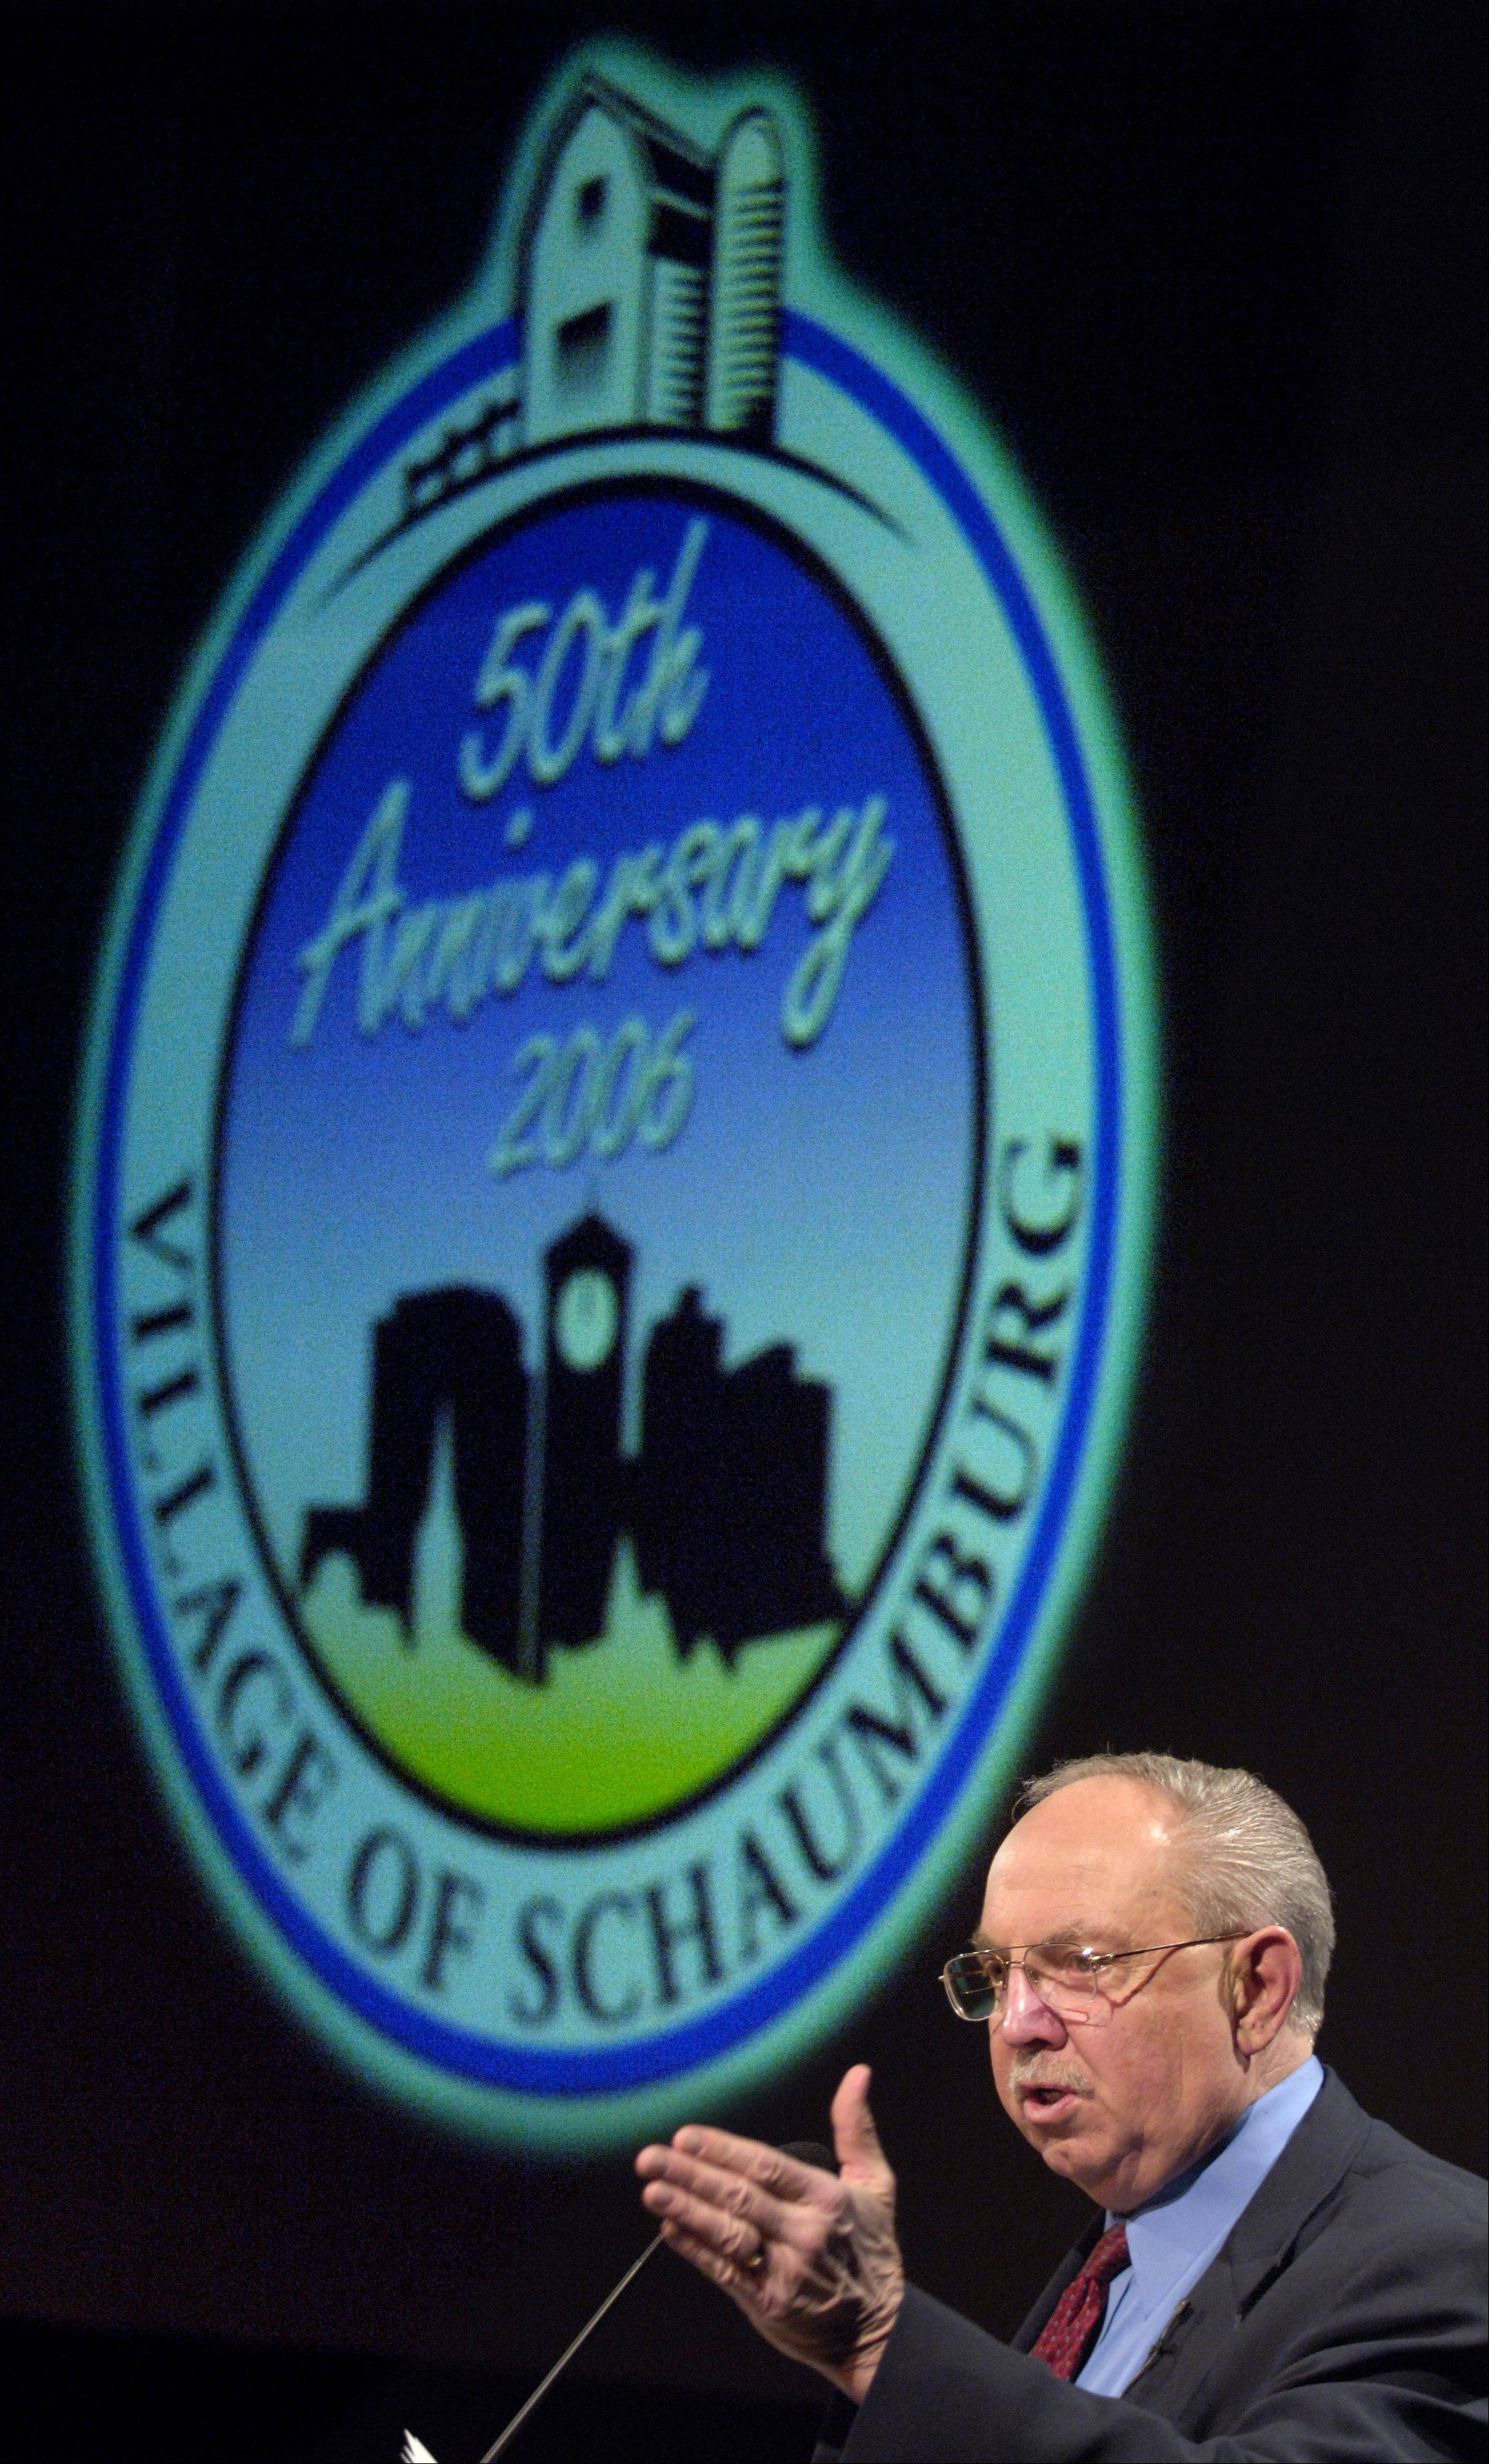 Schaumburg Mayor Al Larson presides over the village's 50th anniversary ceremony in 2006 when the village did not collect a property tax, but it does now and has collected more than $47 million in the past two years.